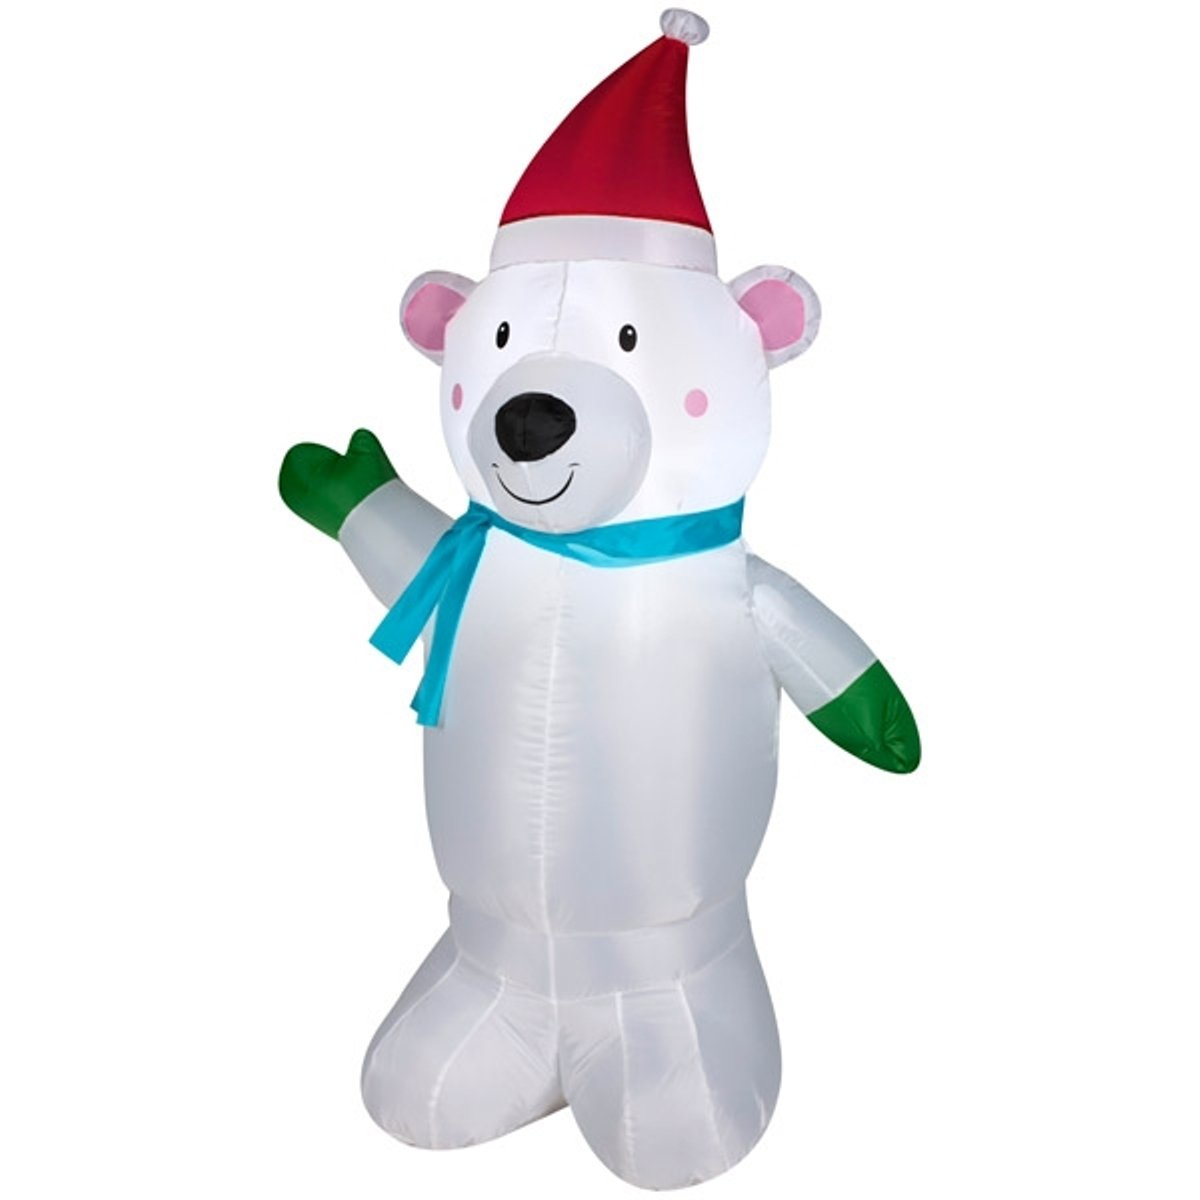 amazoncom gemmy airblown inflatable polar bear wearing santa hat green mittens and a blue scarf holiday indoor outdoor decoration 4 feet tall garden